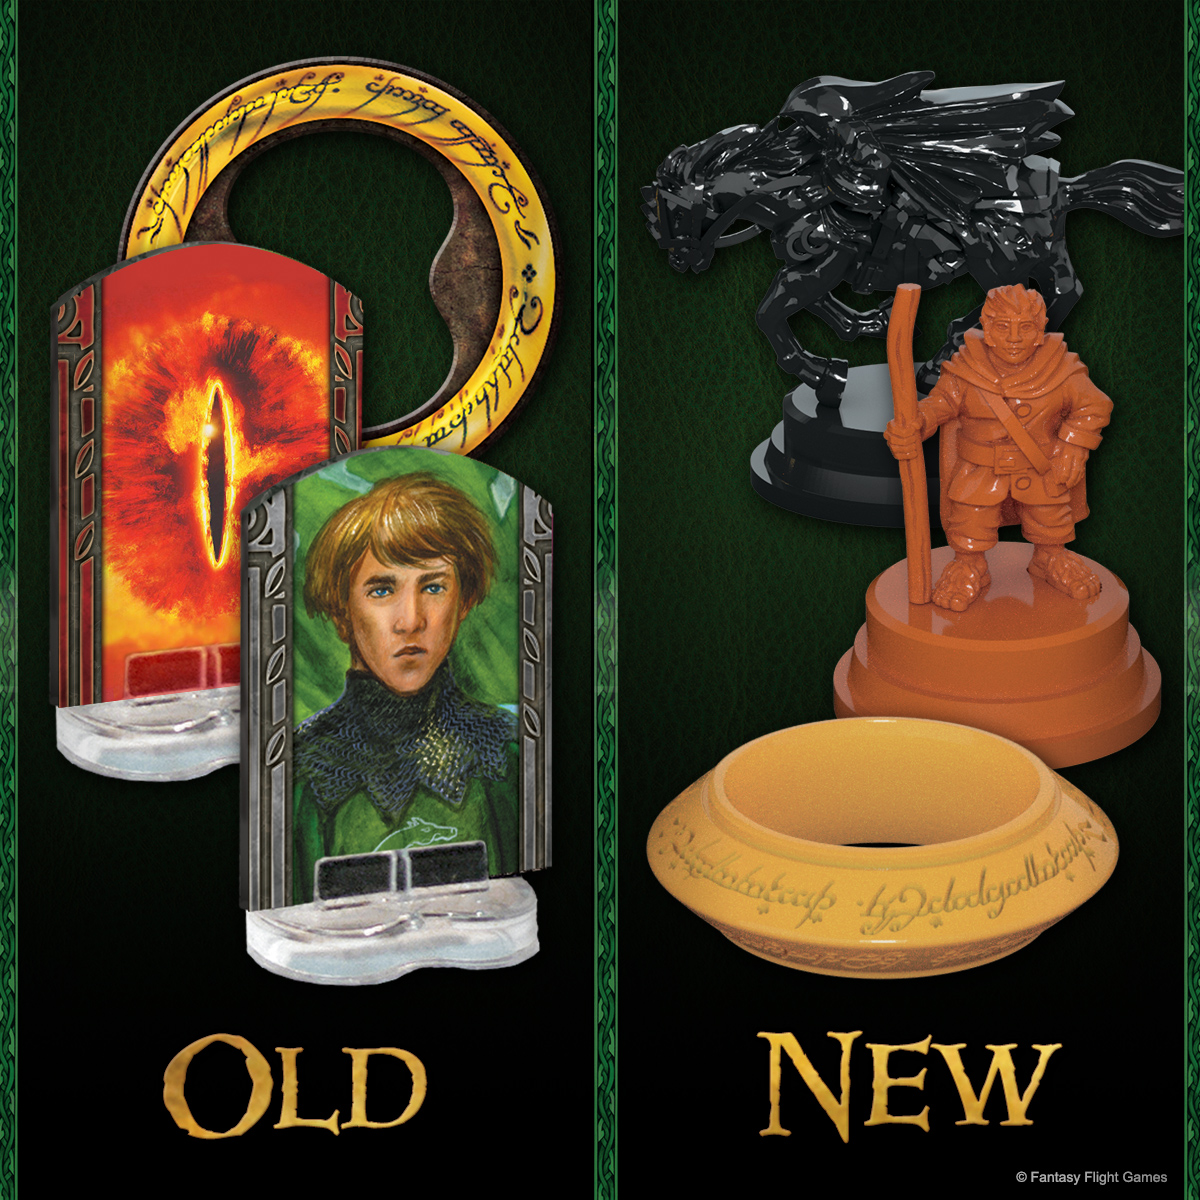 Feast your eyes on the brand-new sculpts for Hobbits, Sauron, and the One Ring in the anniversary edition of The Lord of the Rings: The Board Game! #TheLordoftheRings #boardgame https://t.co/GxDWEVh7NX